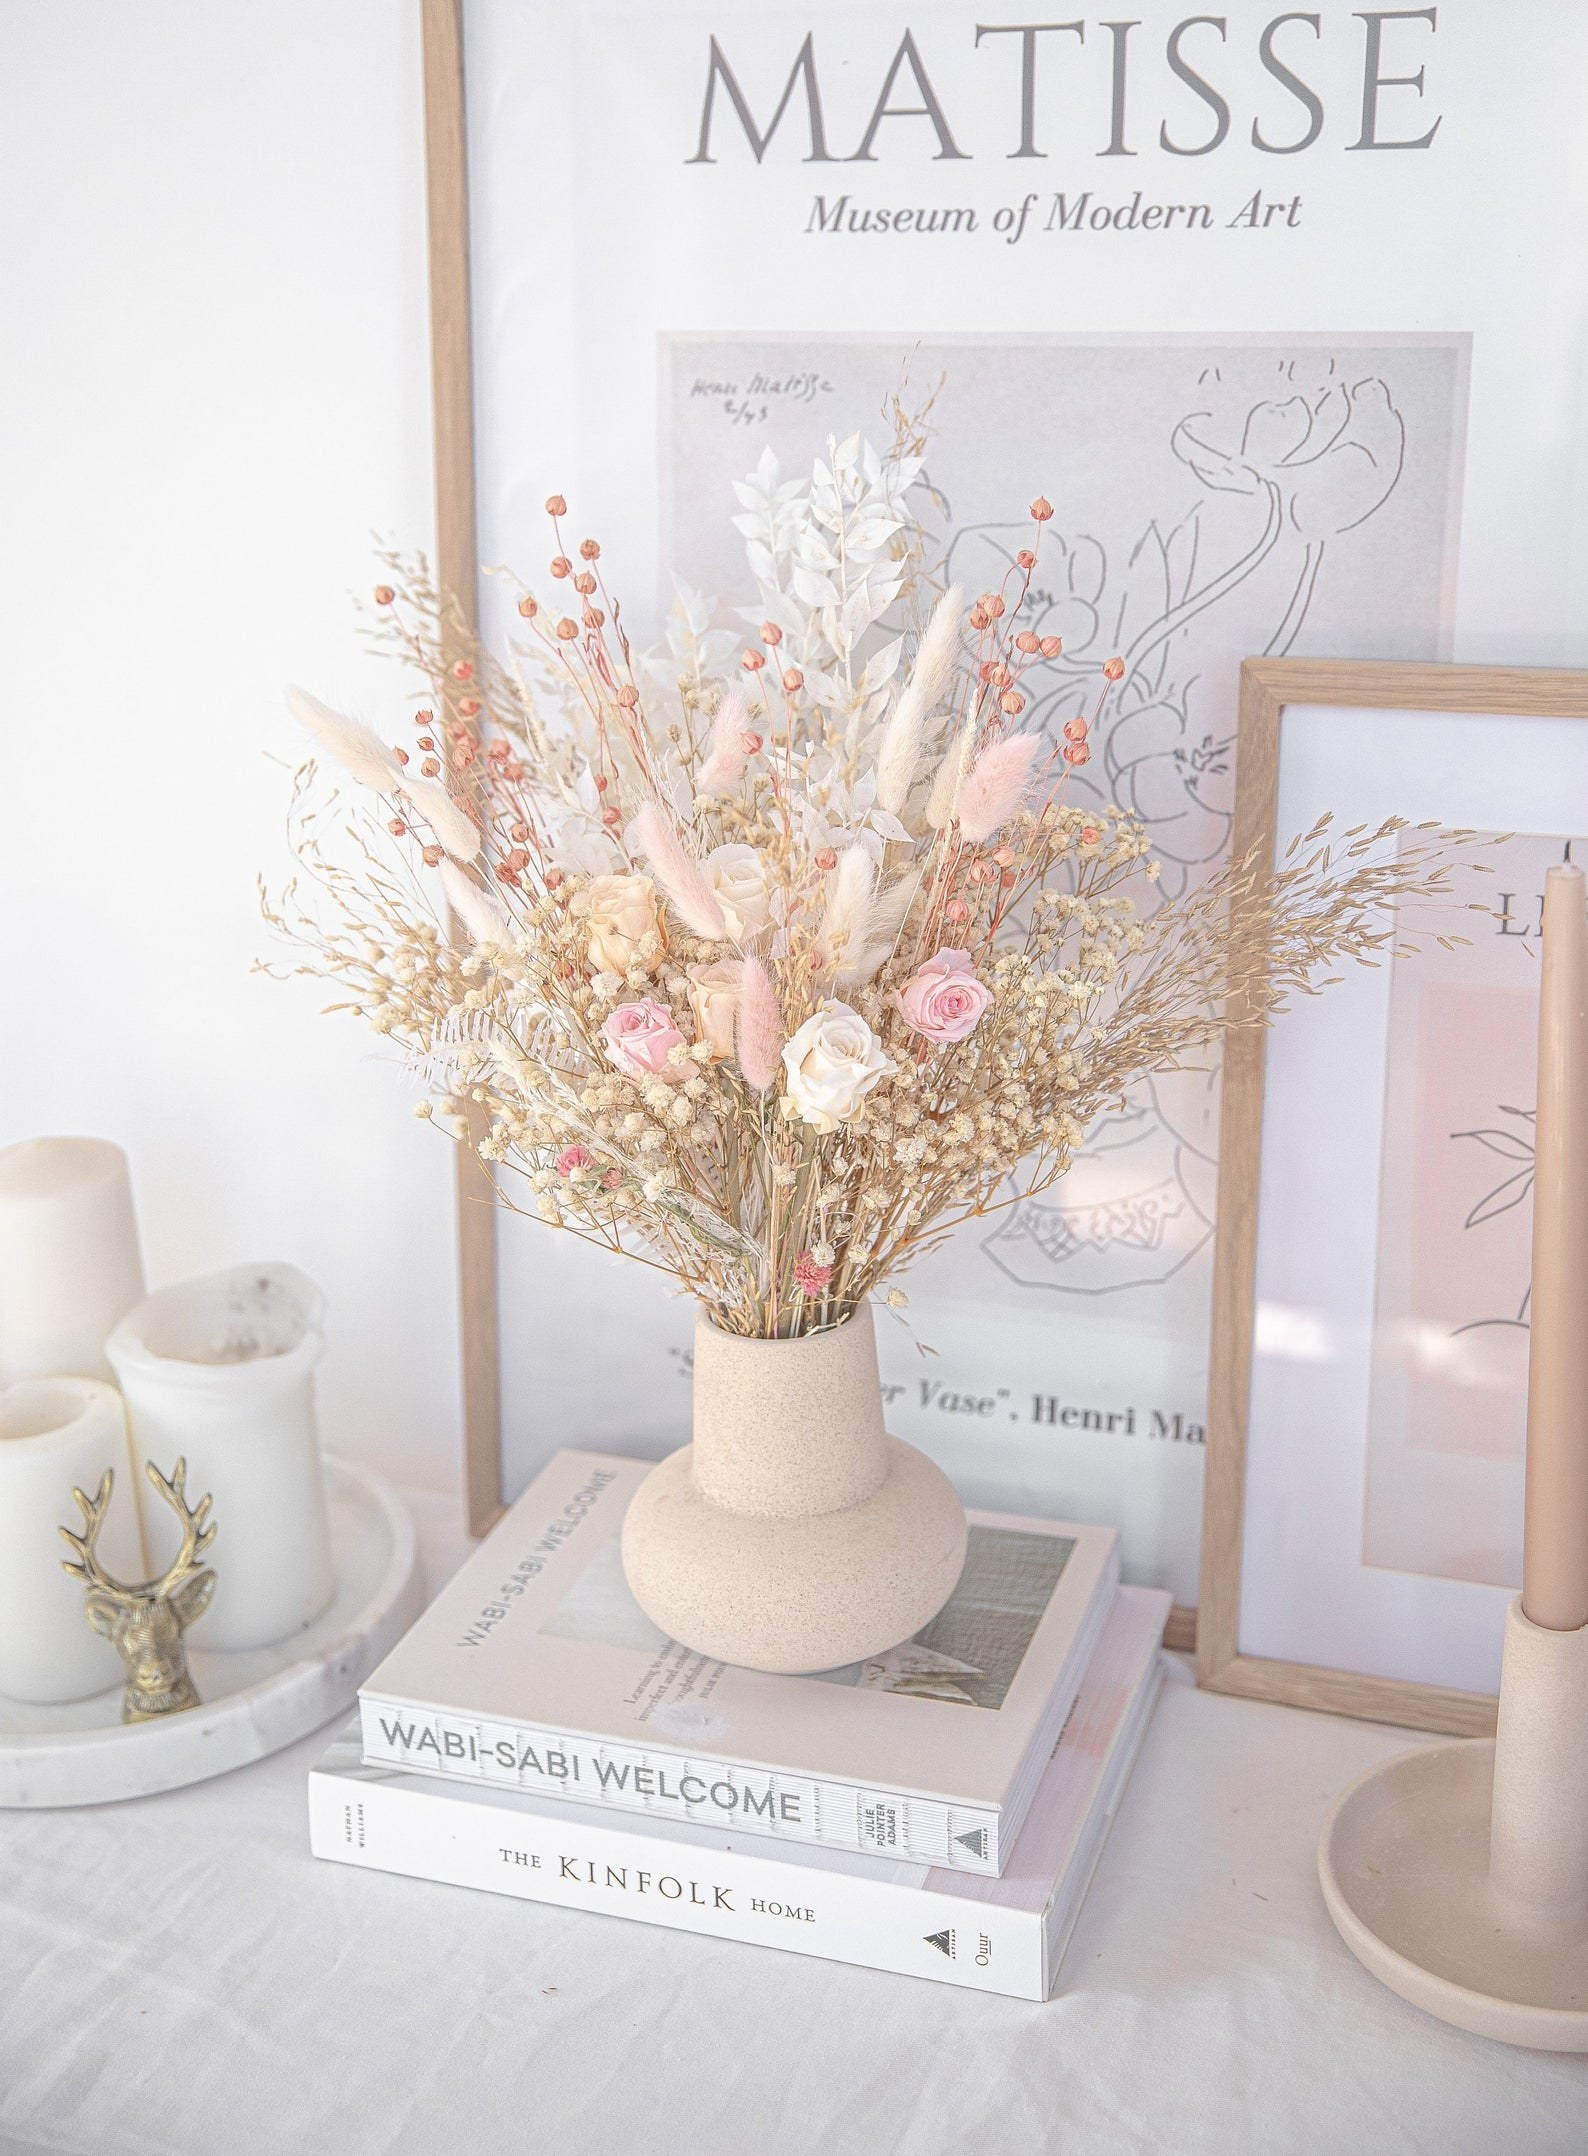 the bouquet in a vase